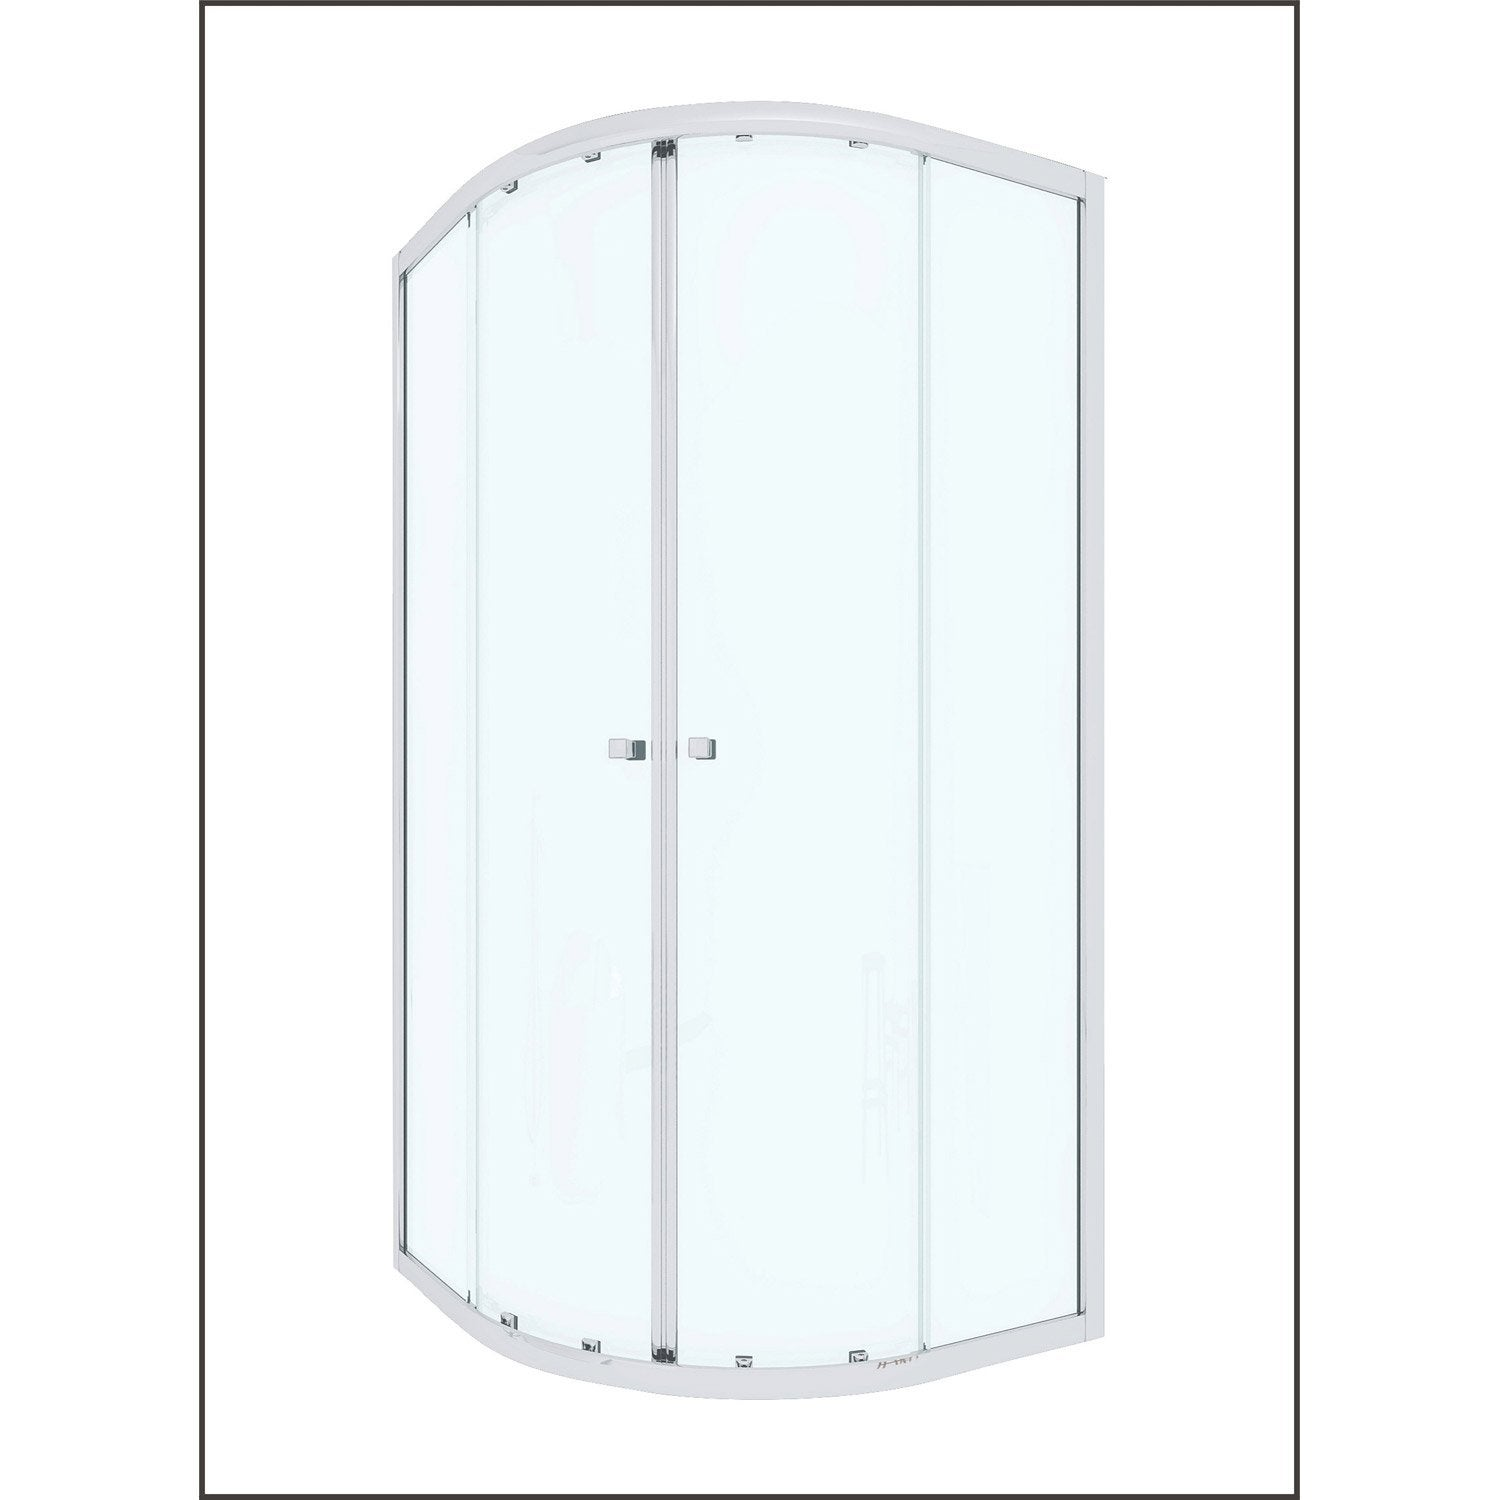 porte de douche coulissante angle 1 4 de cercle 90 x 90 cm transparent dado leroy merlin. Black Bedroom Furniture Sets. Home Design Ideas